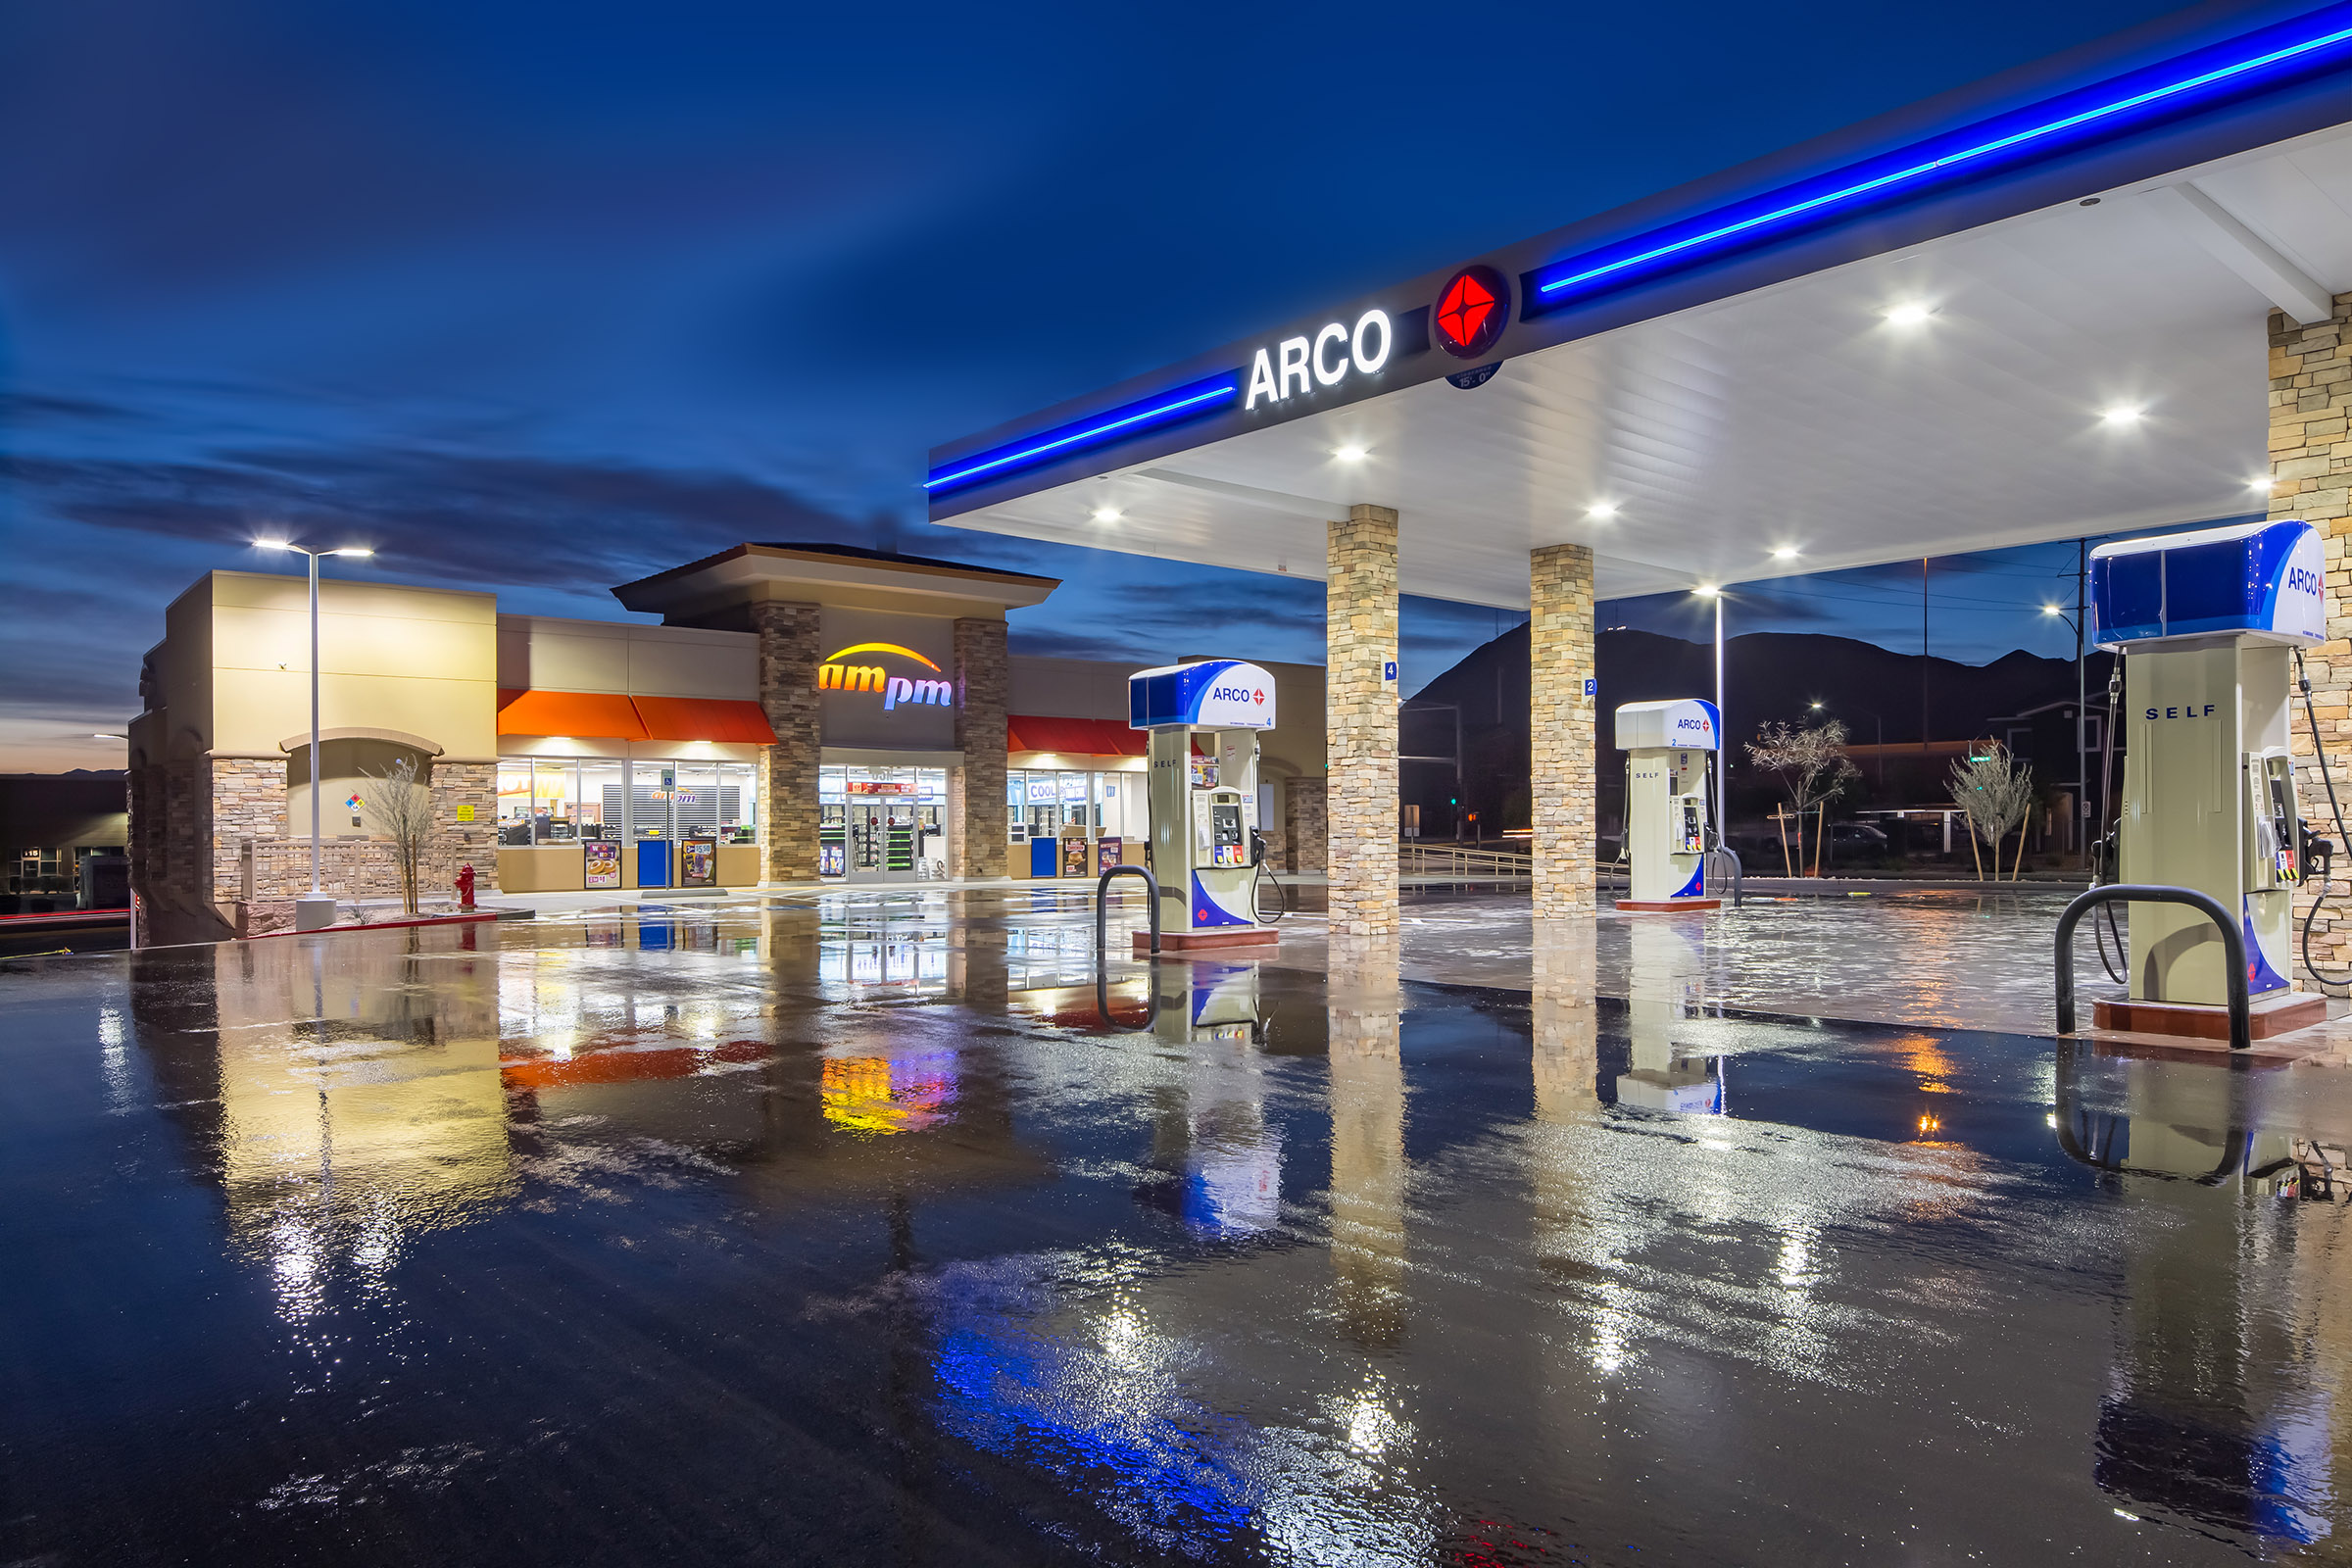 Arco Gas Station Near Me >> Arco Ampm Fuel Center Offers Free Vacuums In Its Car Wash Area Dc